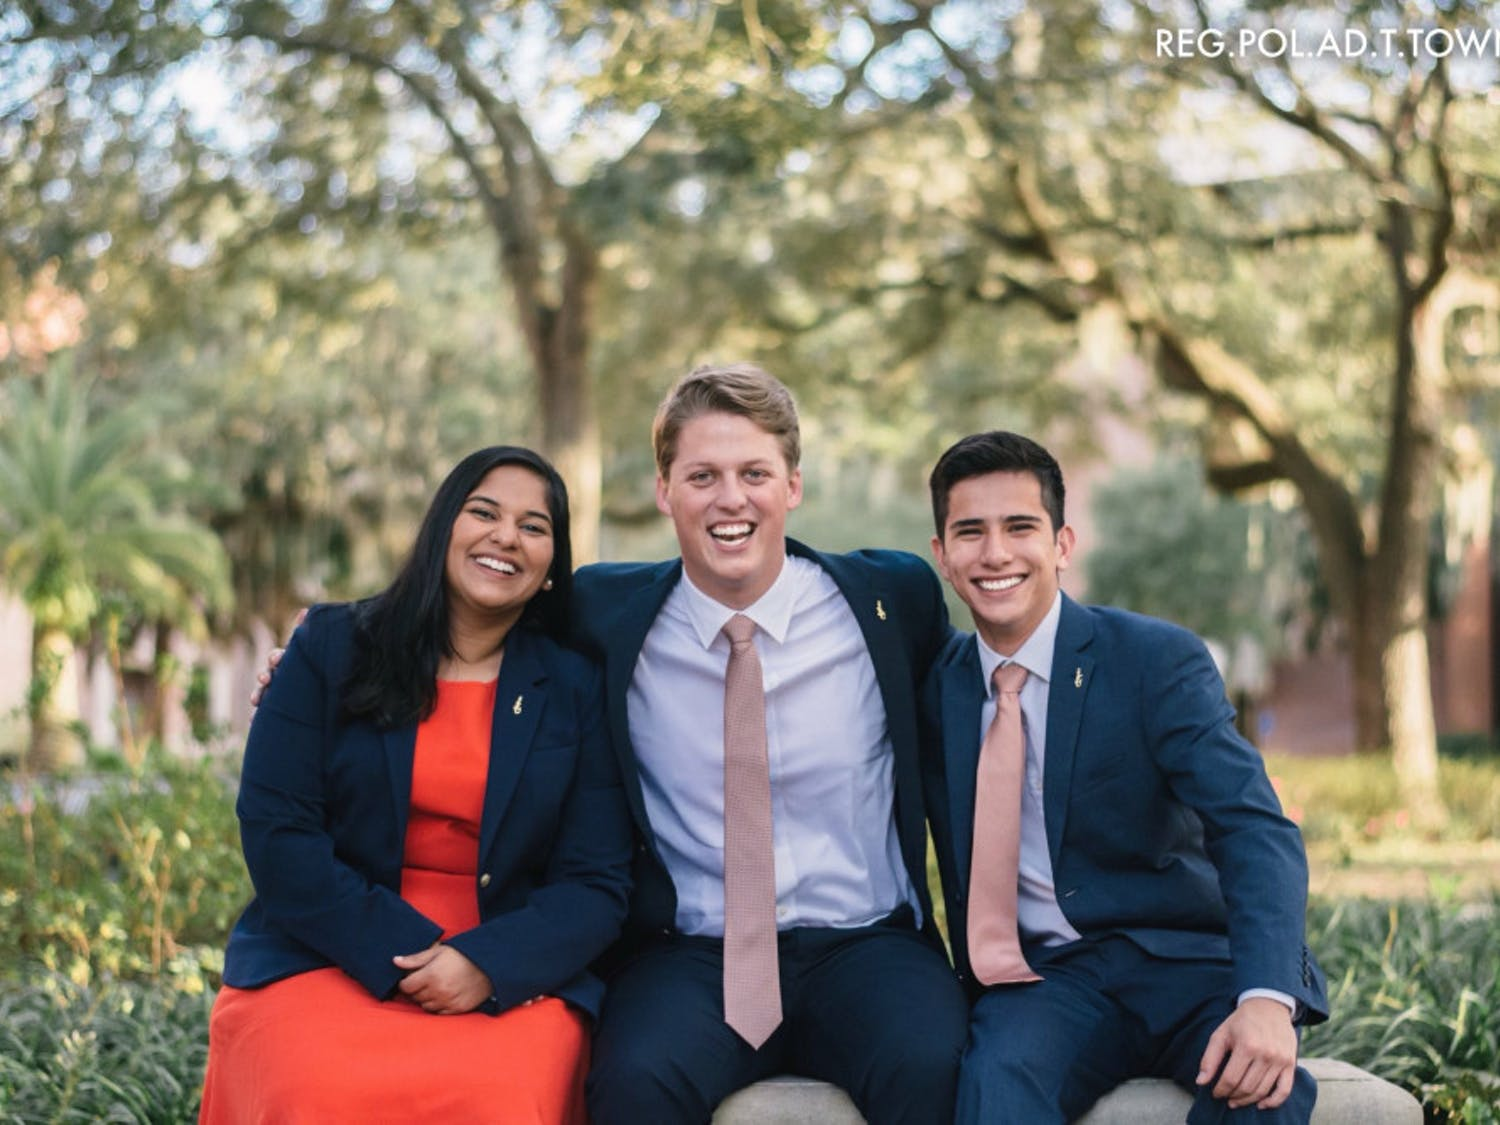 Impact Party's executive ticket consists of Michael Murphy, 21, for Student Body president (center); Sarah Abraham, 20, for Student Body vice president (left); and Santiago Gutierrez, 20, for Student Body treasurer (right).